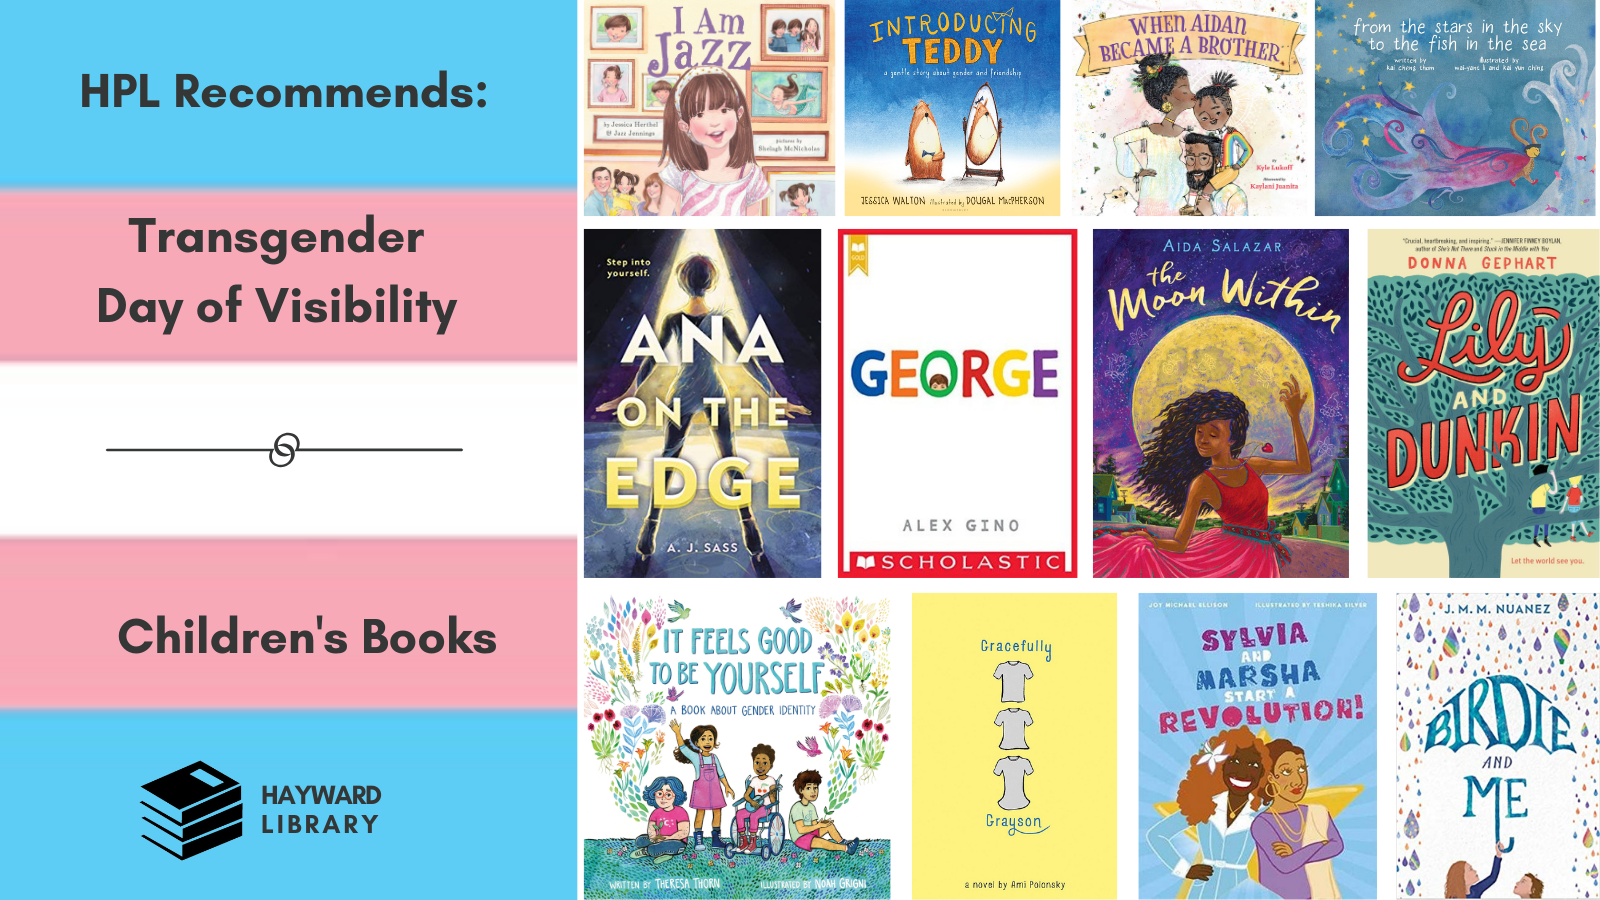 collage of book covers with trans pride flag